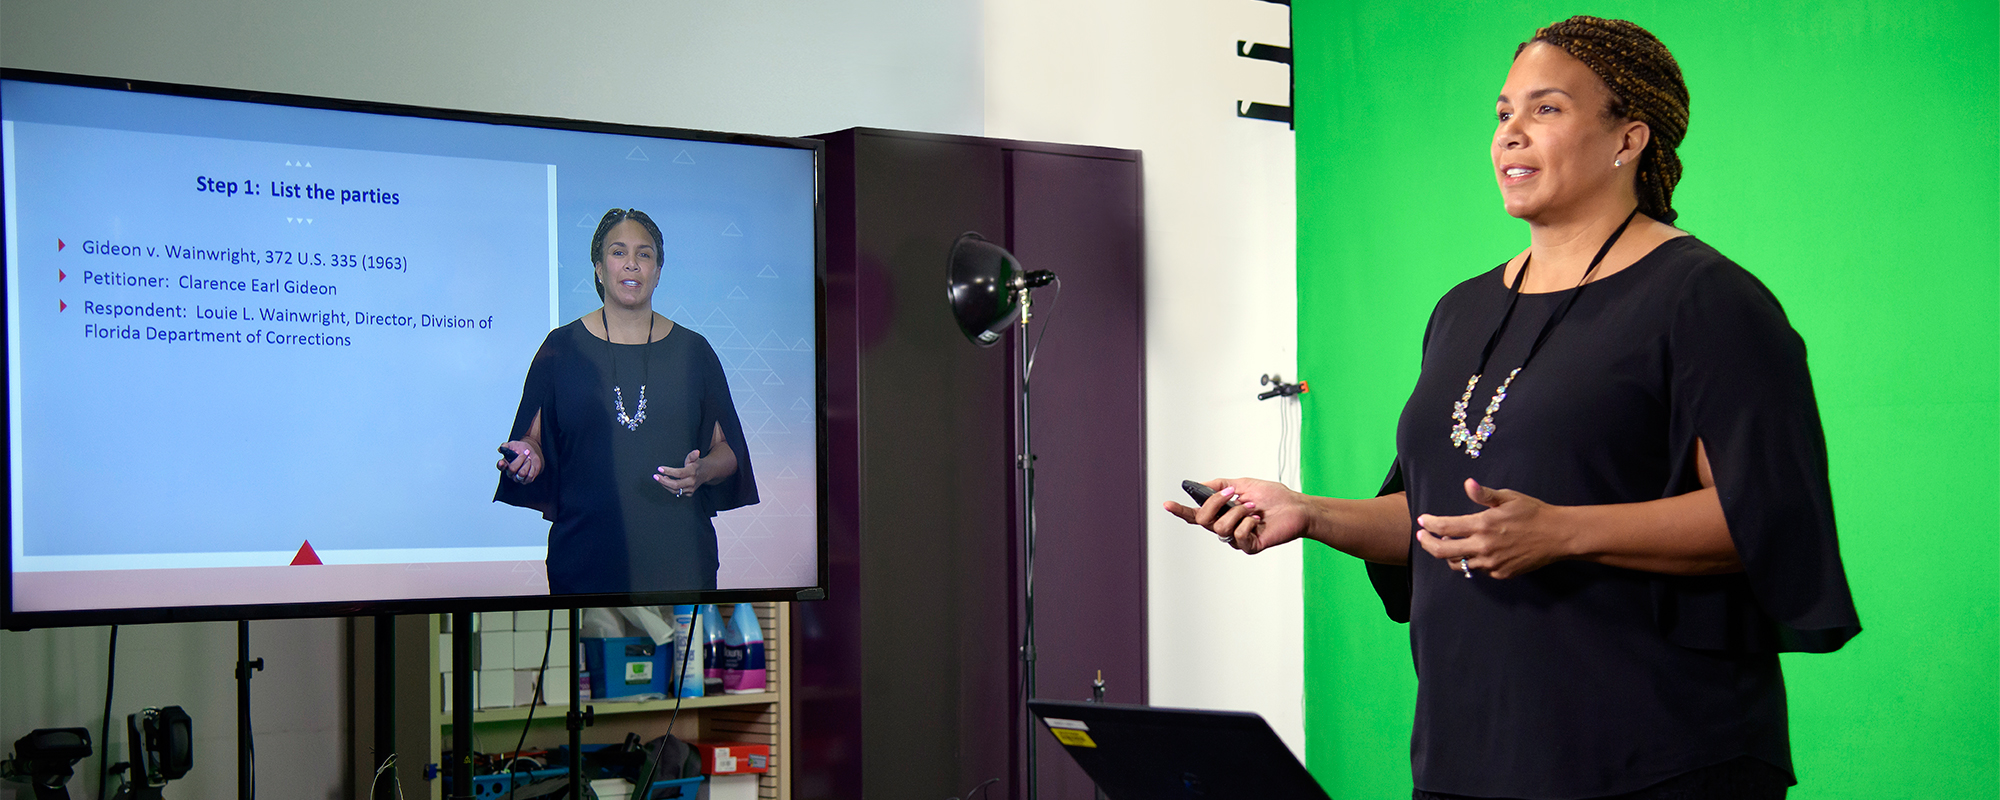 A female University of Arizona Law films a lecture in front of a green screen and monitor for an online law degree